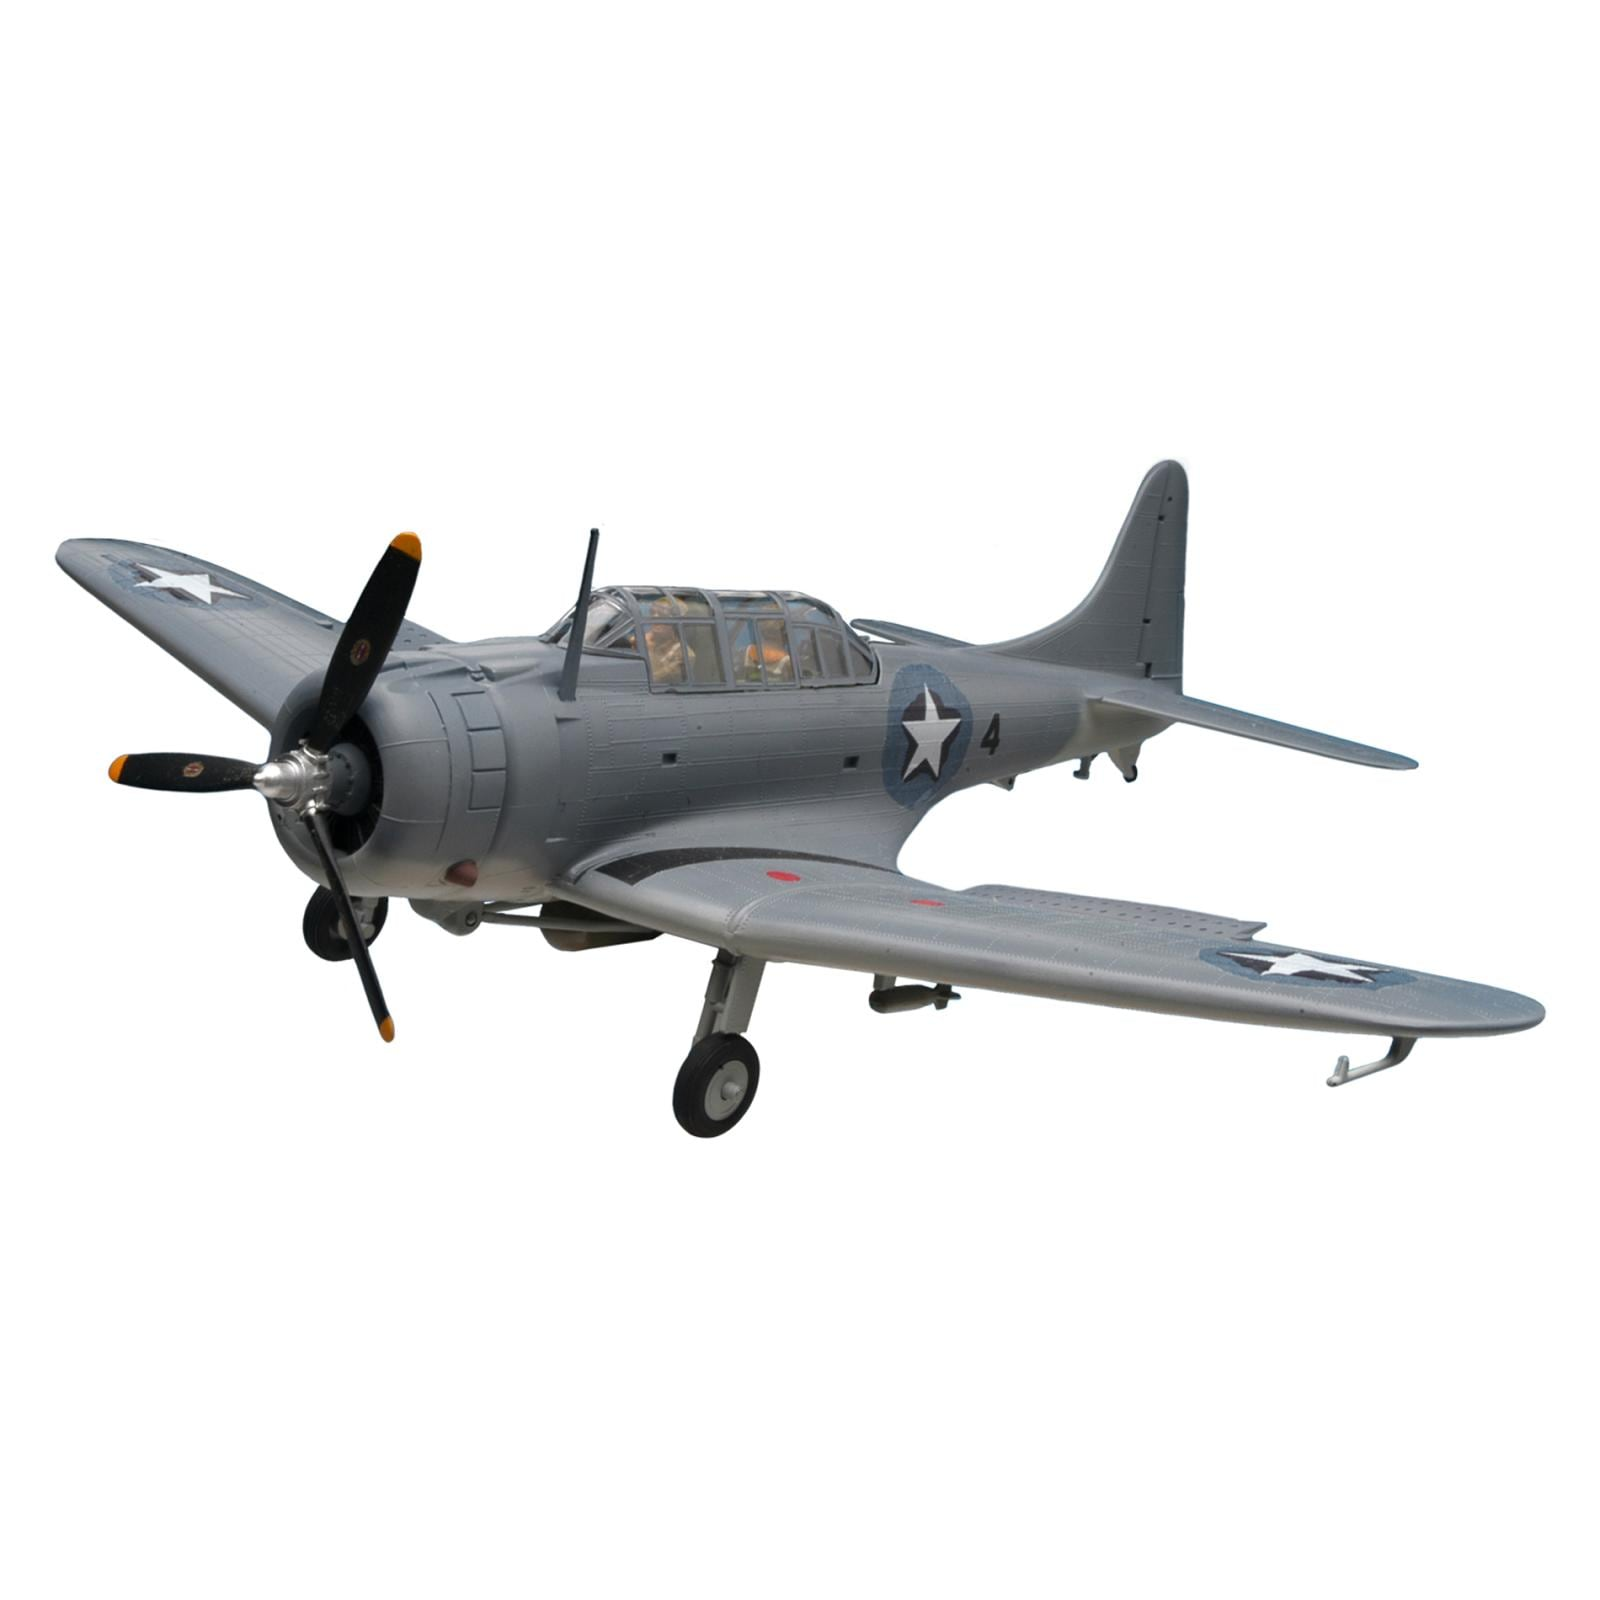 Revell 1:48 Scale SBD Dauntless Plastic Model Kit - Thumbnail 0